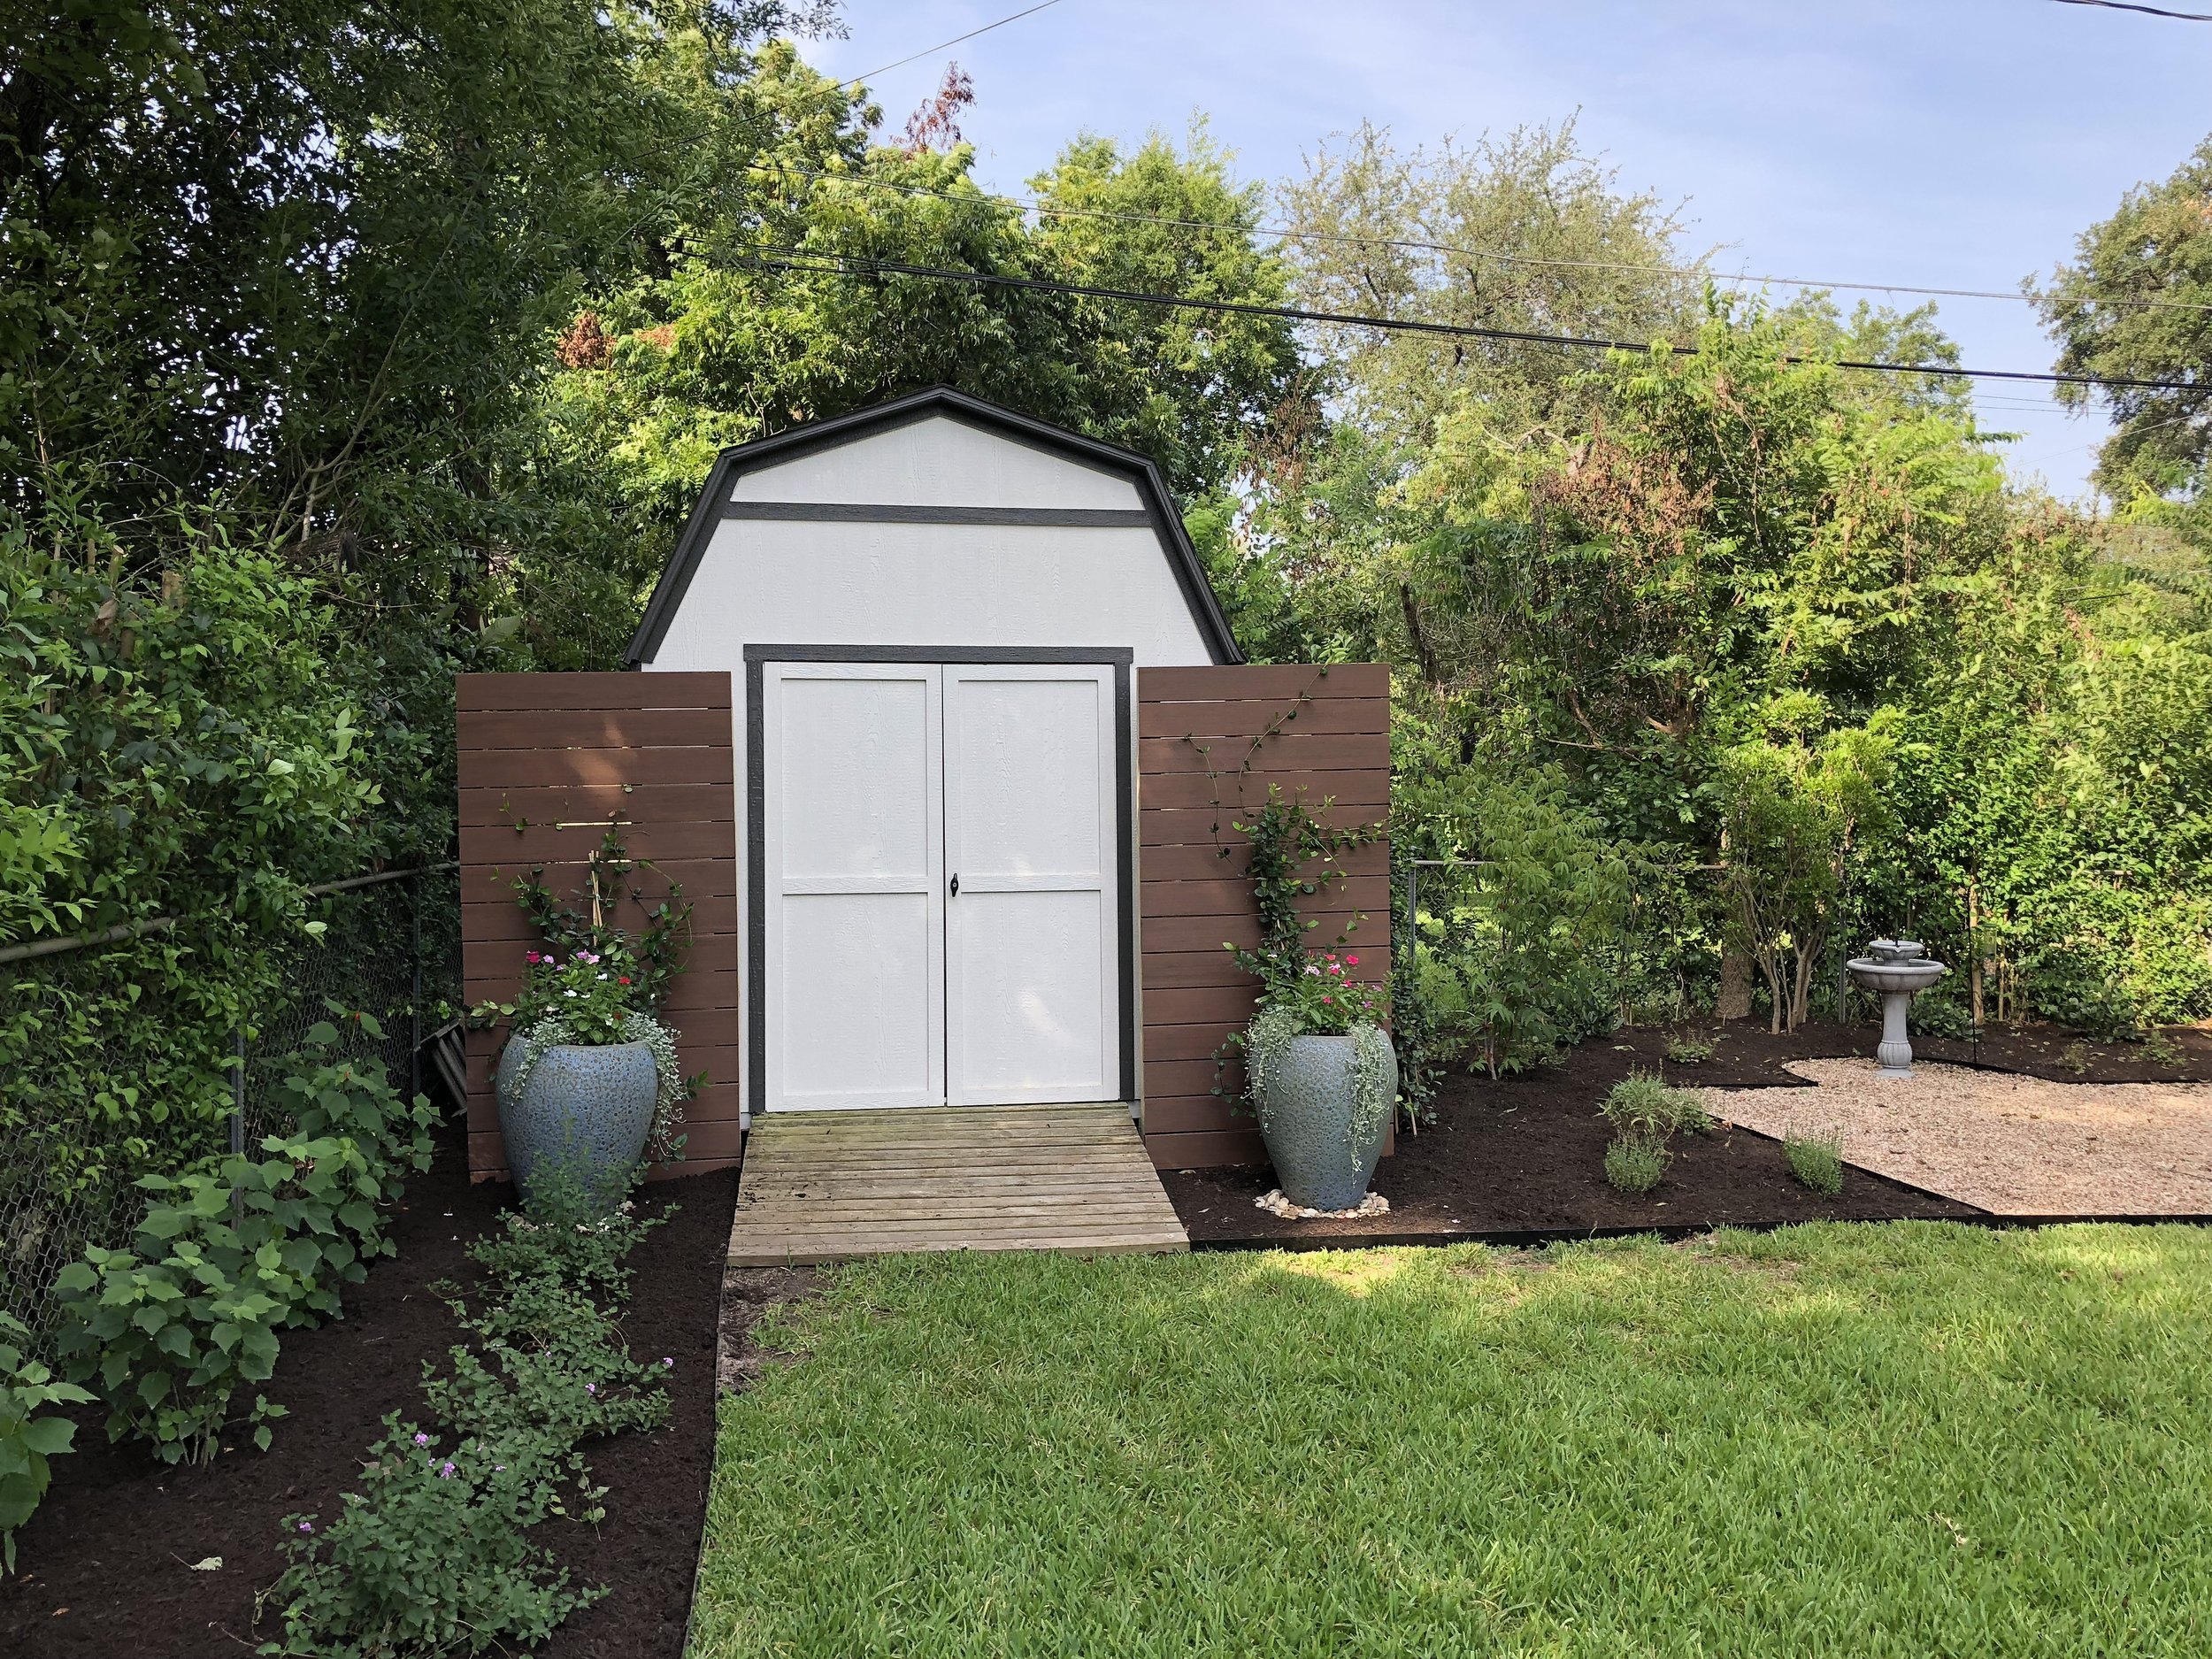 The existing shed was dressed up with a screen, vines, and flower pots.